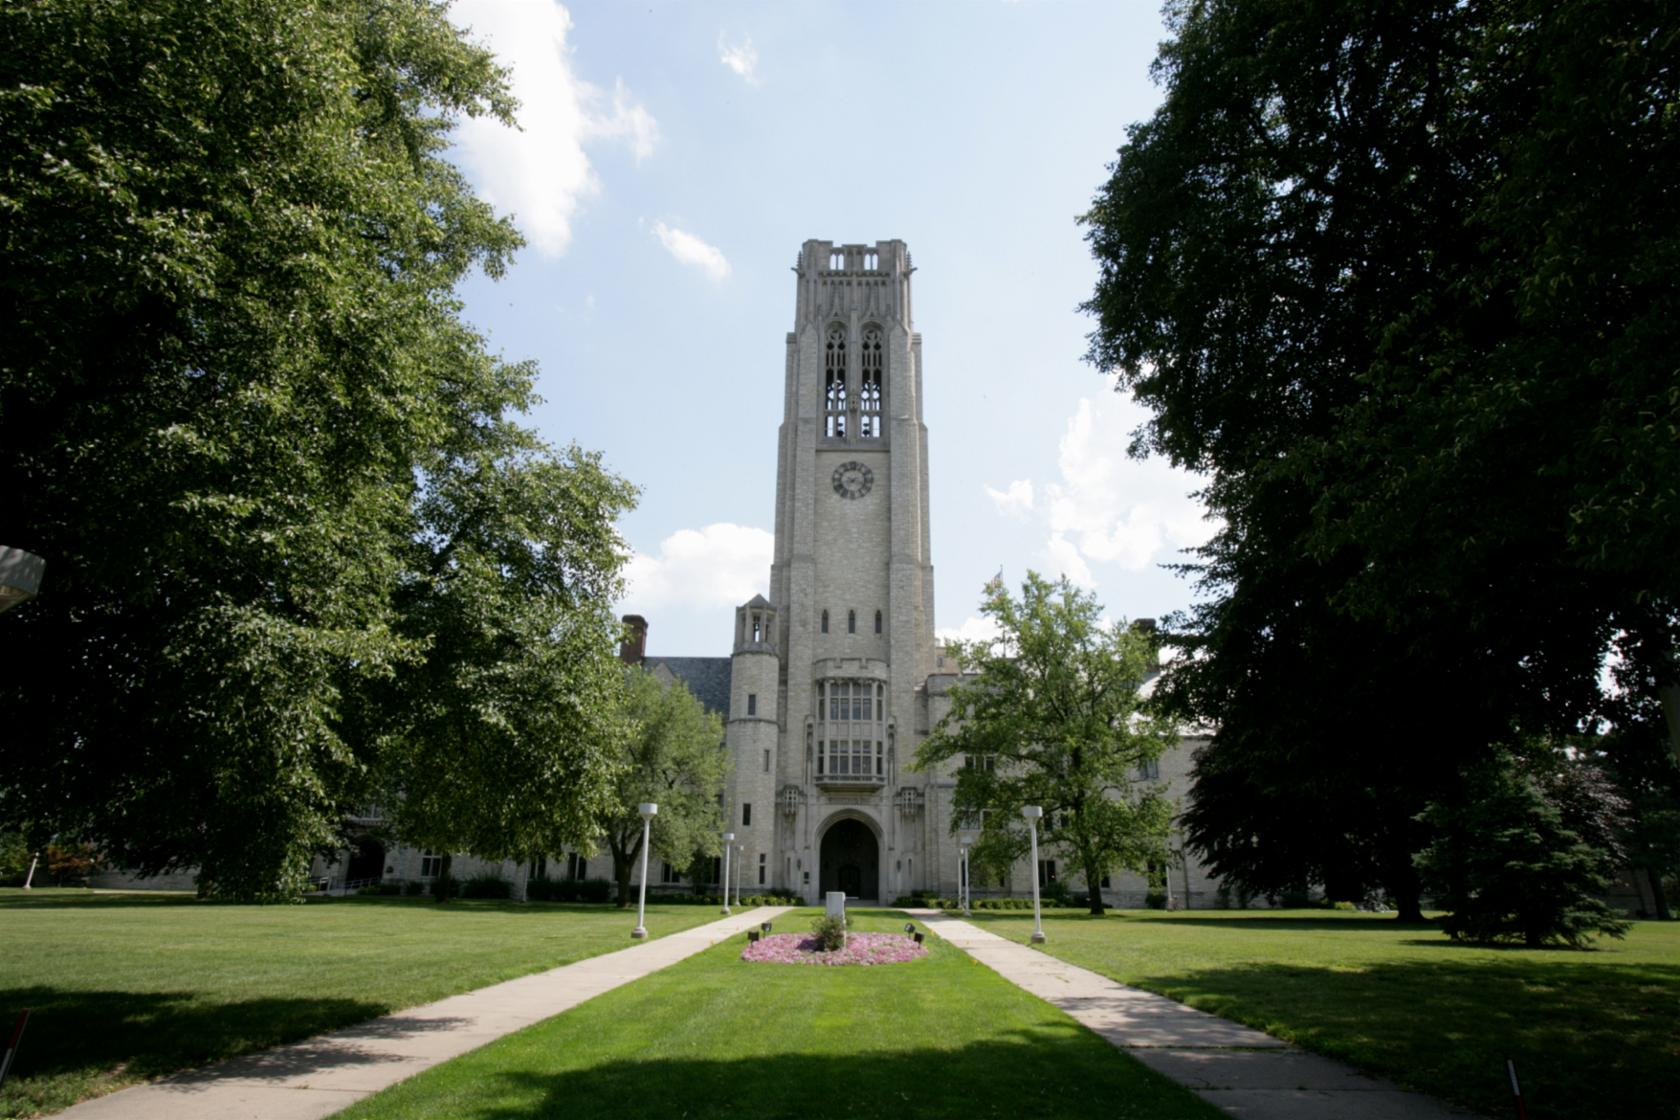 Experience The University of Toledo in Virtual Reality